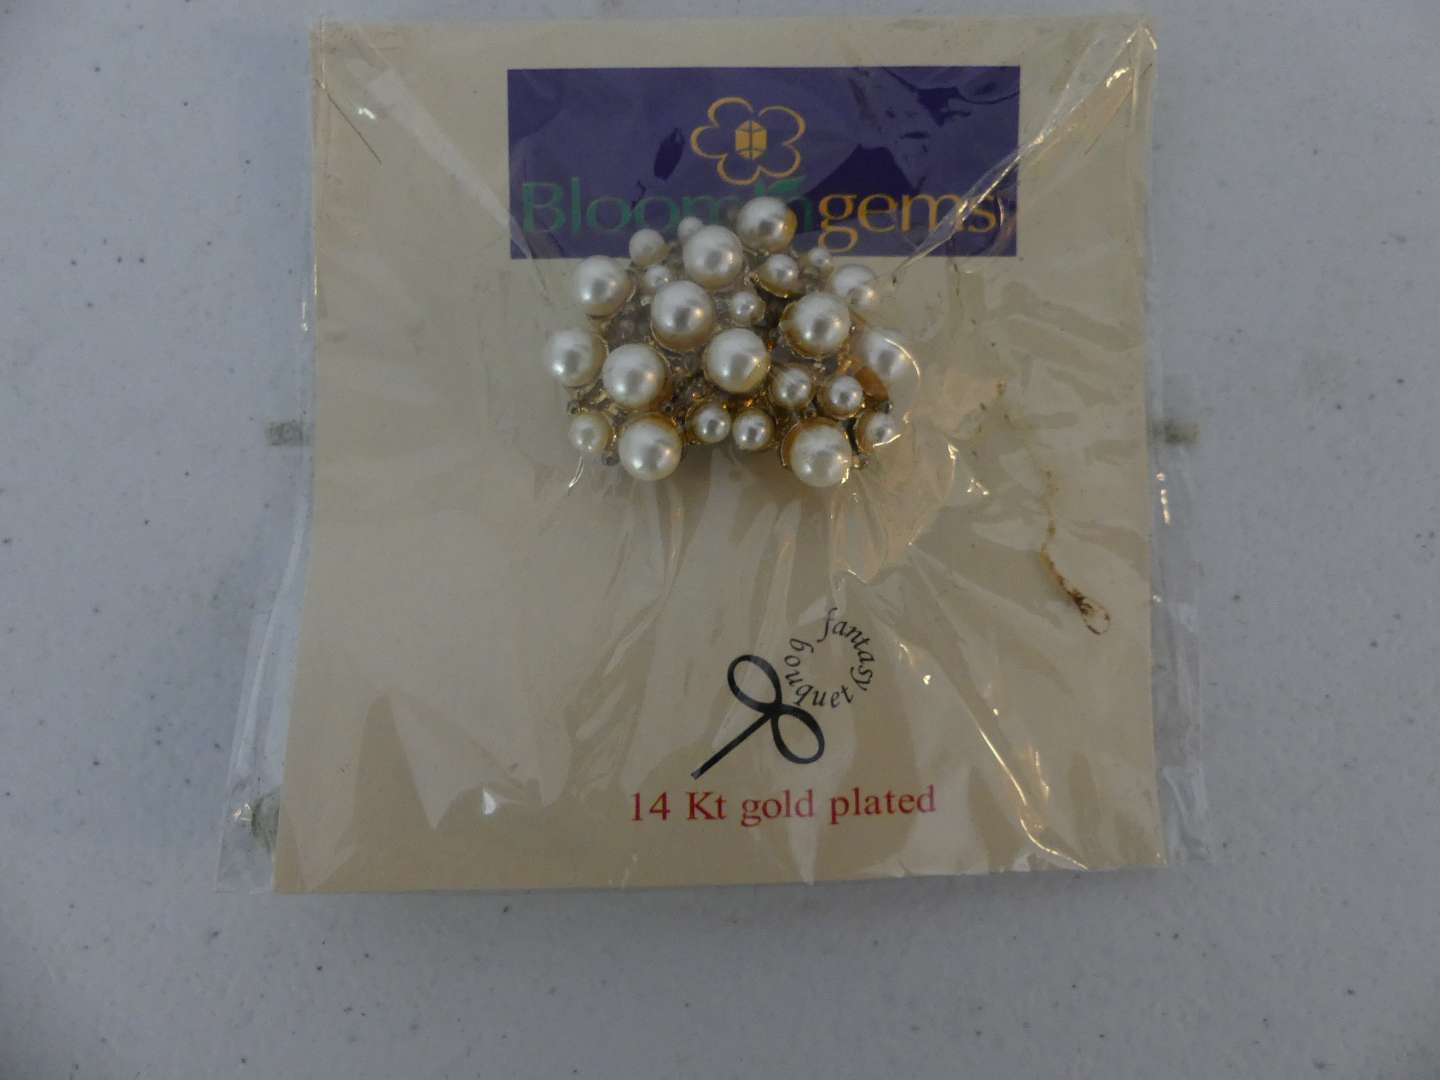 Lot #126 Vintage Bloomin Gems 14k Gold Plated Cultured Pearl Cluster Brooch/Pin - New in Package